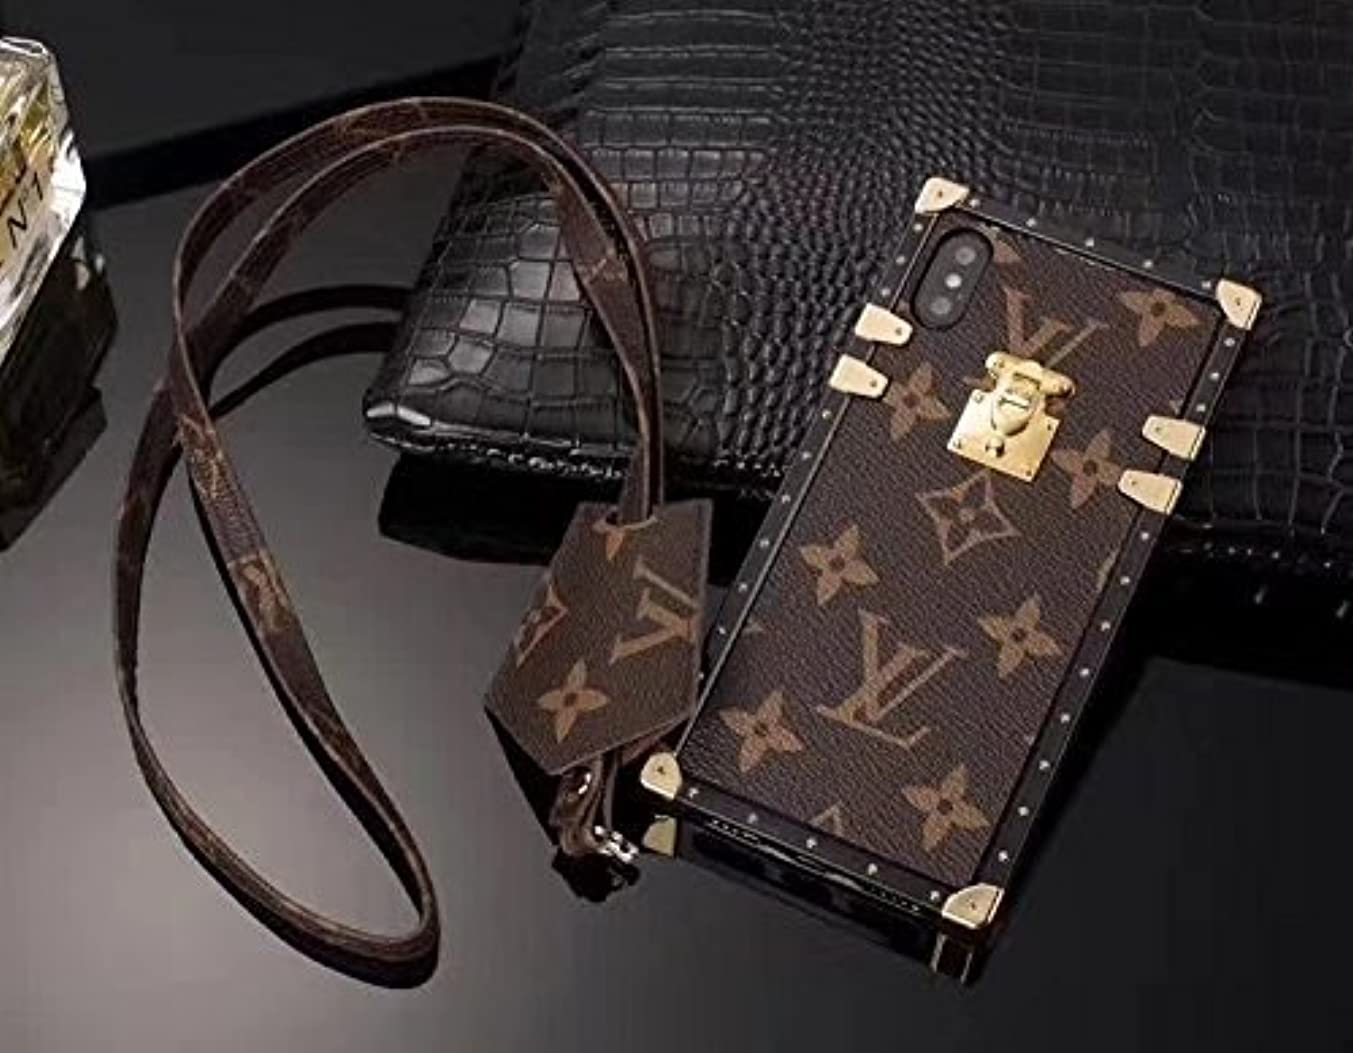 Trunk Case for iPhone 6,iPhone 6S,Fashion Elegant Luxury PU Leather Wallet Monogram Style Full Protection Cover Case with Lanyards Compatible for Apple iPhone 6 / iPhone 6S